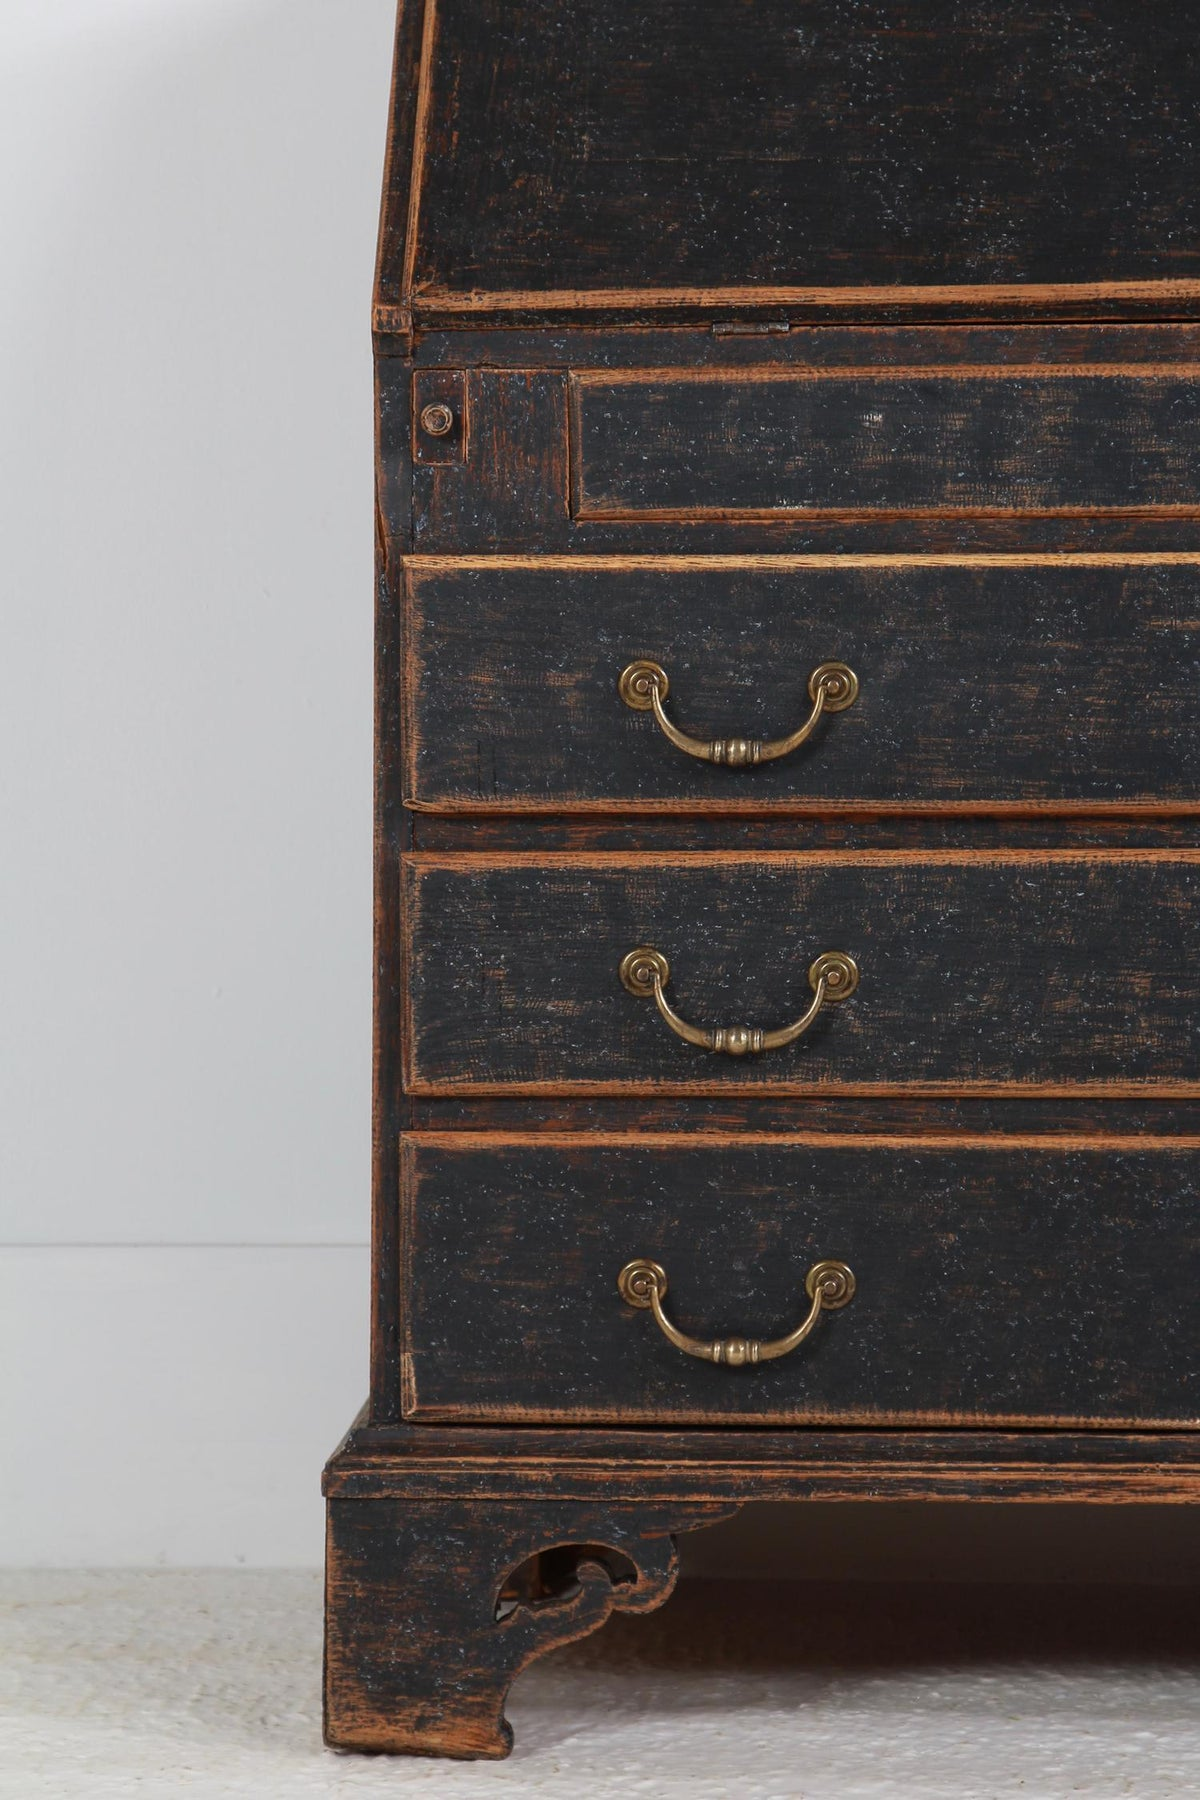 Period Swedish 18thC Baroque Bureau/Secretaire